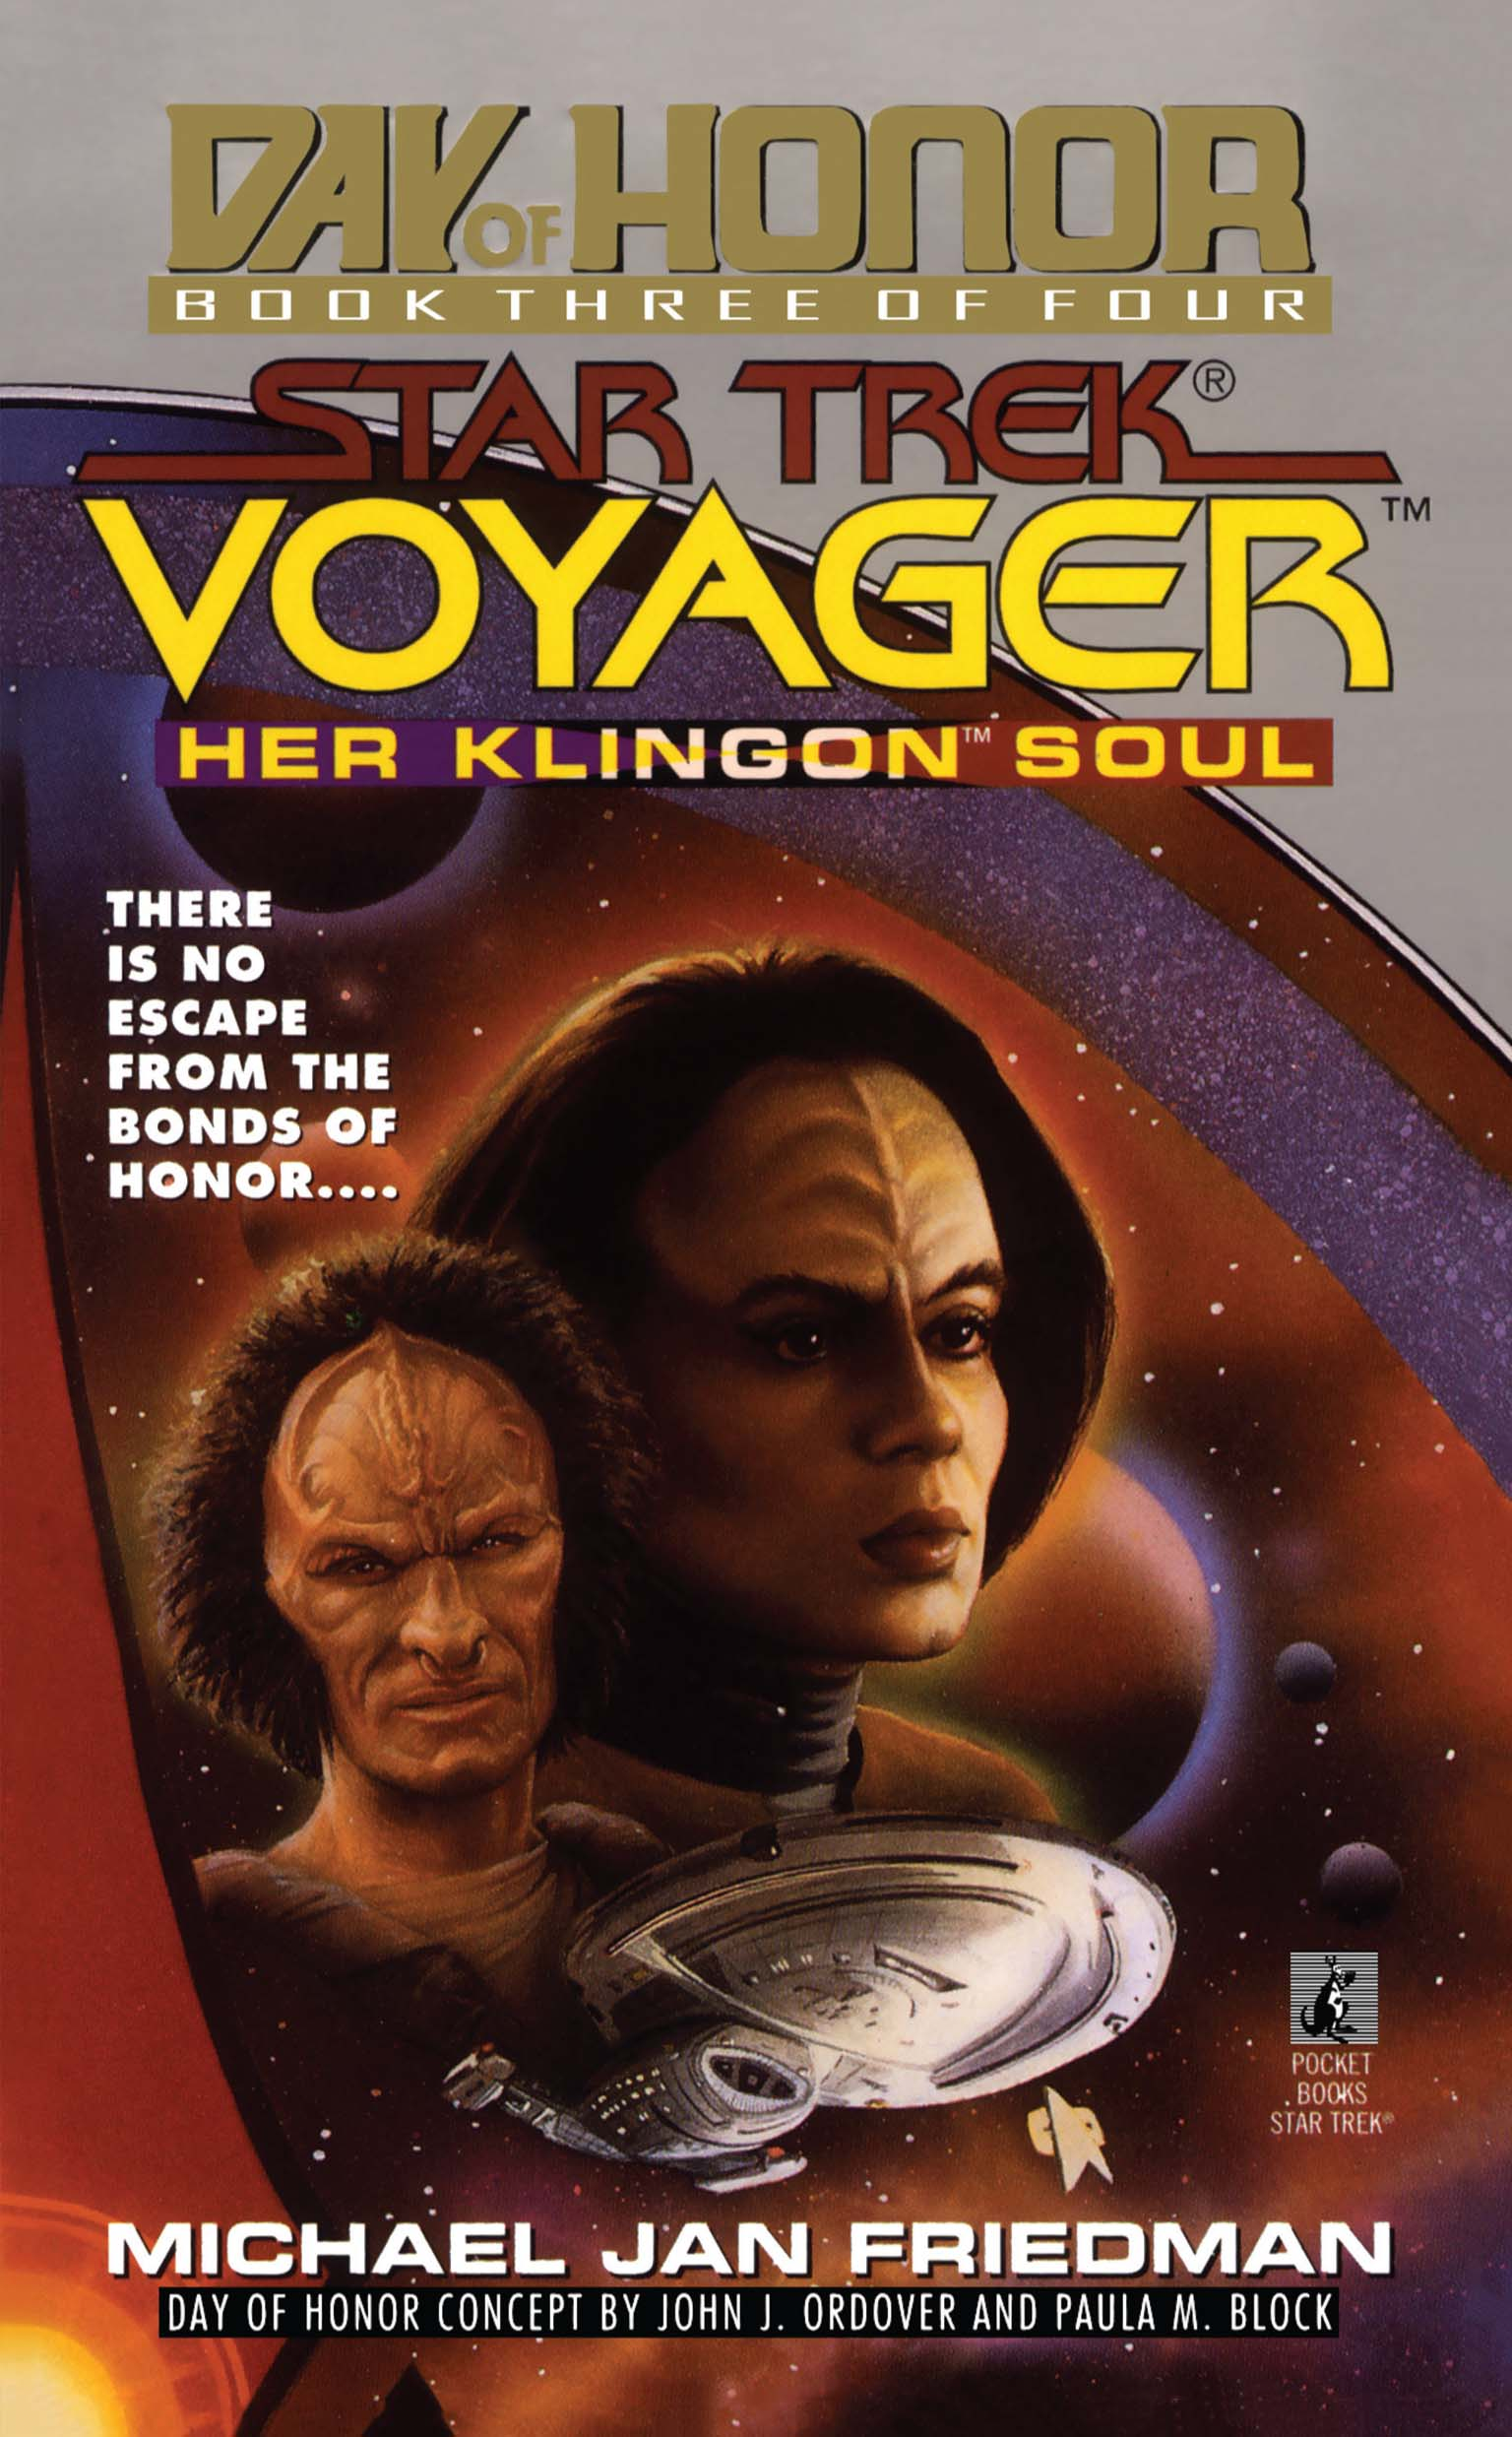 Her-klingon-soul-star-trek-voyager-day-of-honor-3-9781451641707_hr